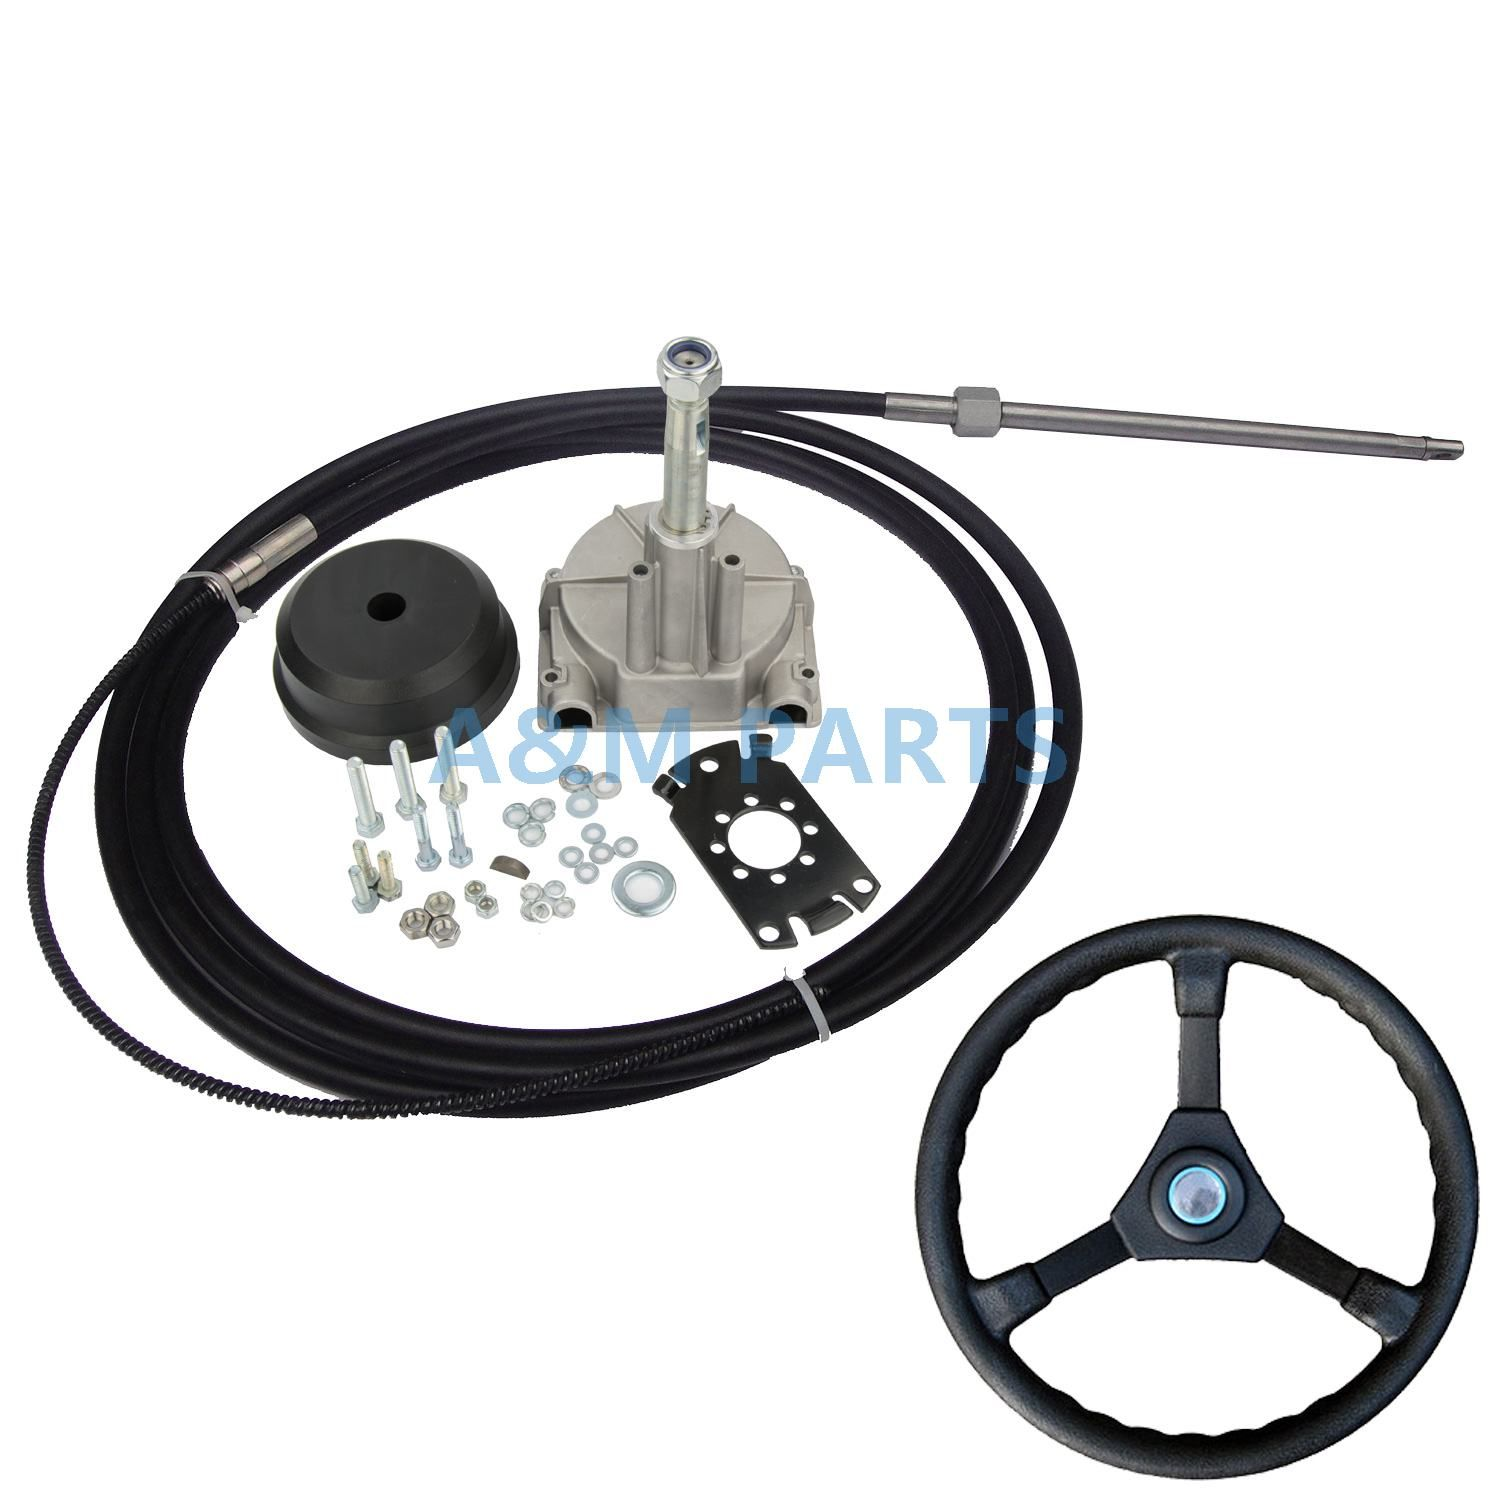 13FT Outboard Single Turbine Rotating Mechanical Steering System Cable & Wheel